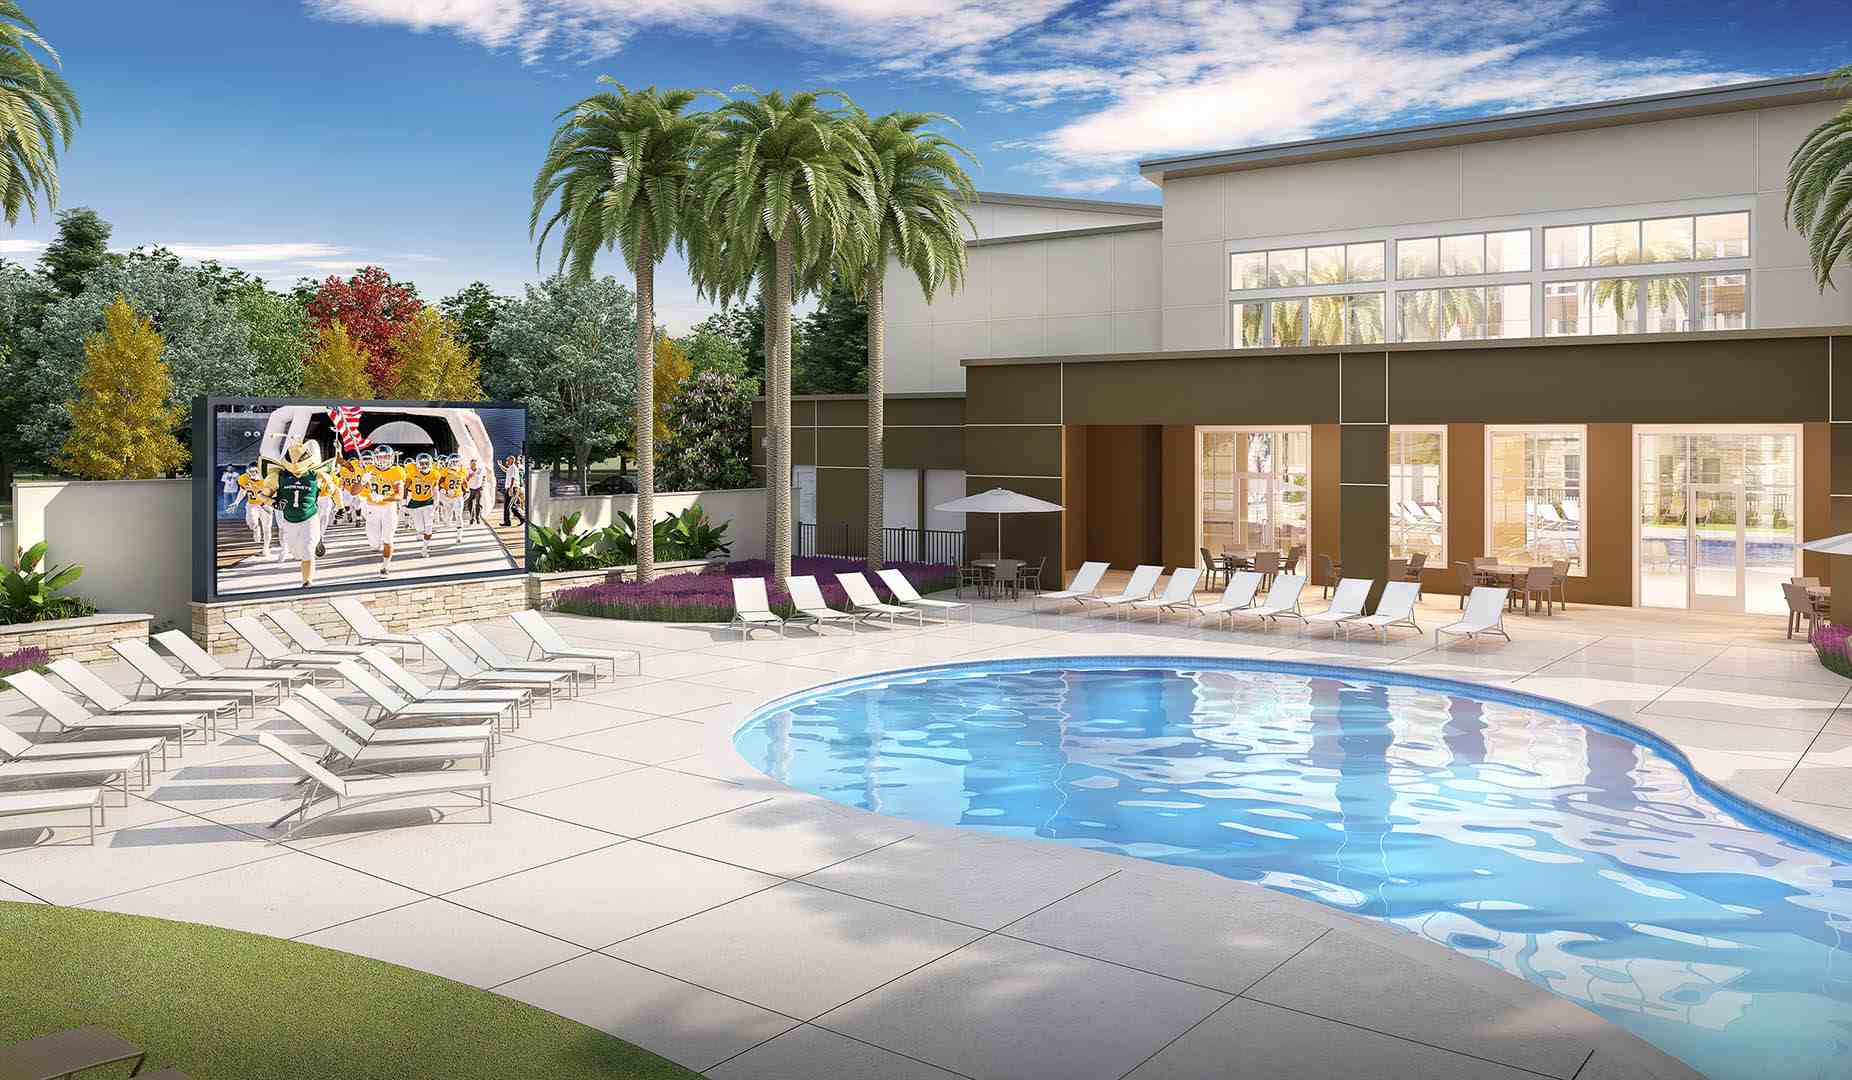 The-Crossings-Student-Living-Sacramento-CA-Poolside2-Unilodgers